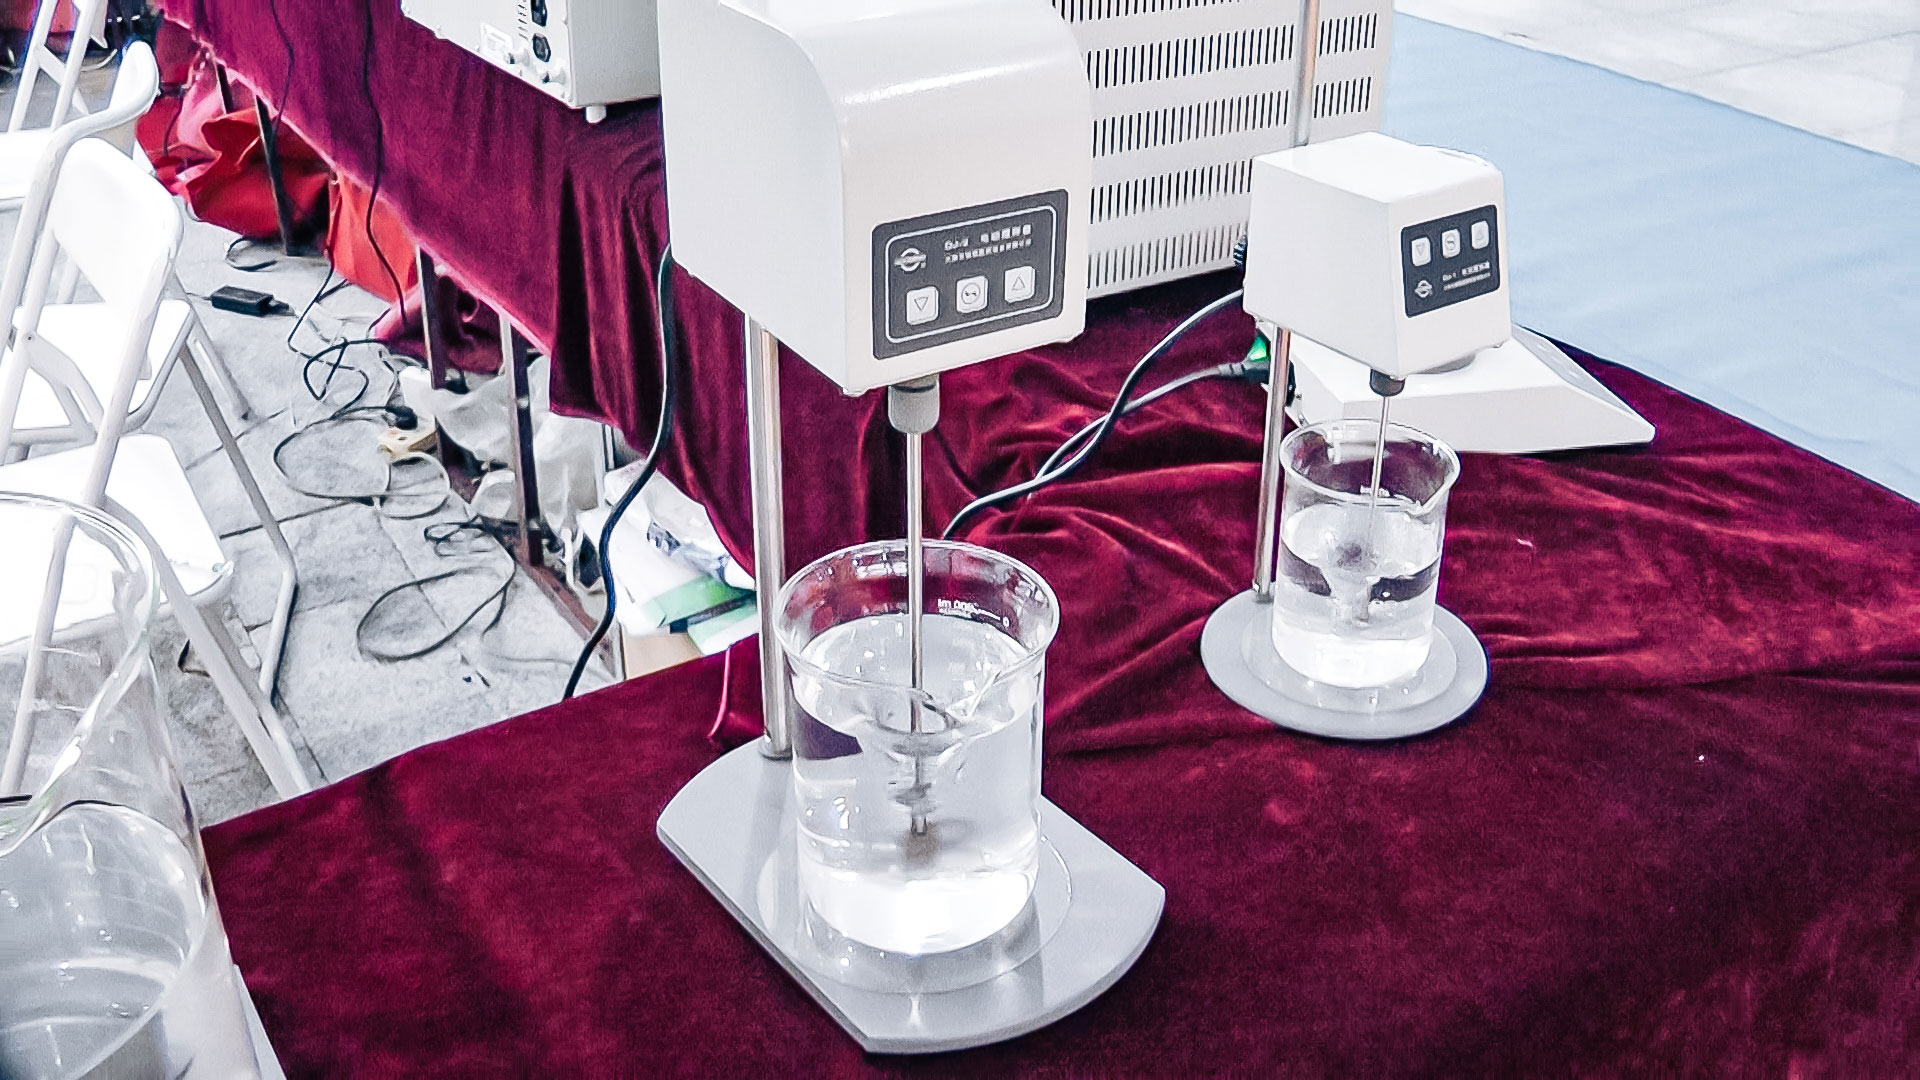 Automatic equipment for testing the dissolution rate of tablets in pharmaceutical production